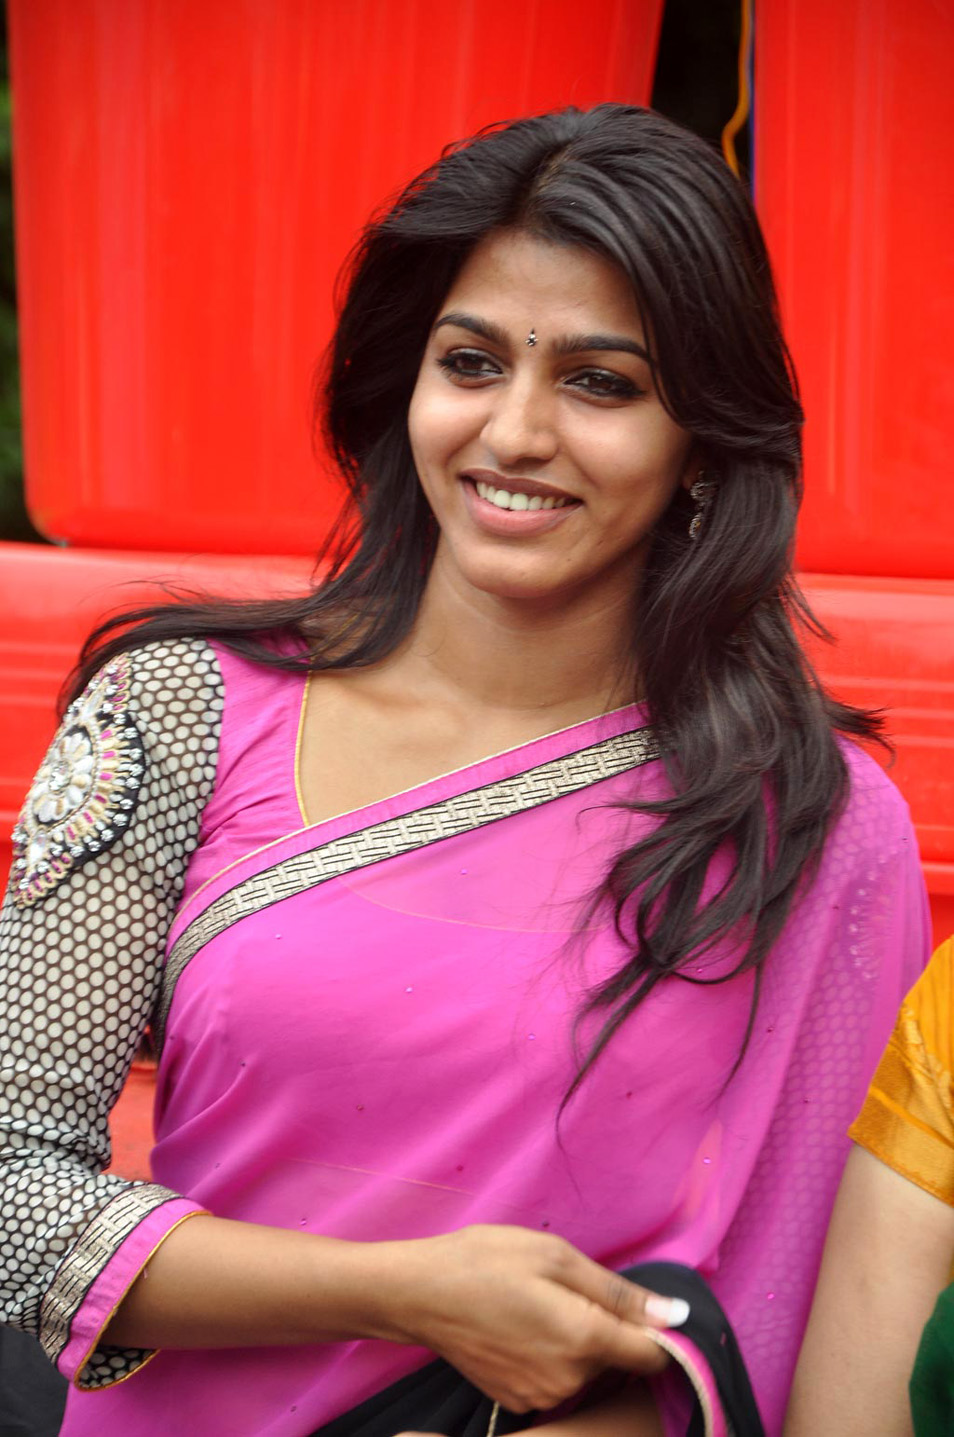 Dhansika is an Indian film actress stills Online News